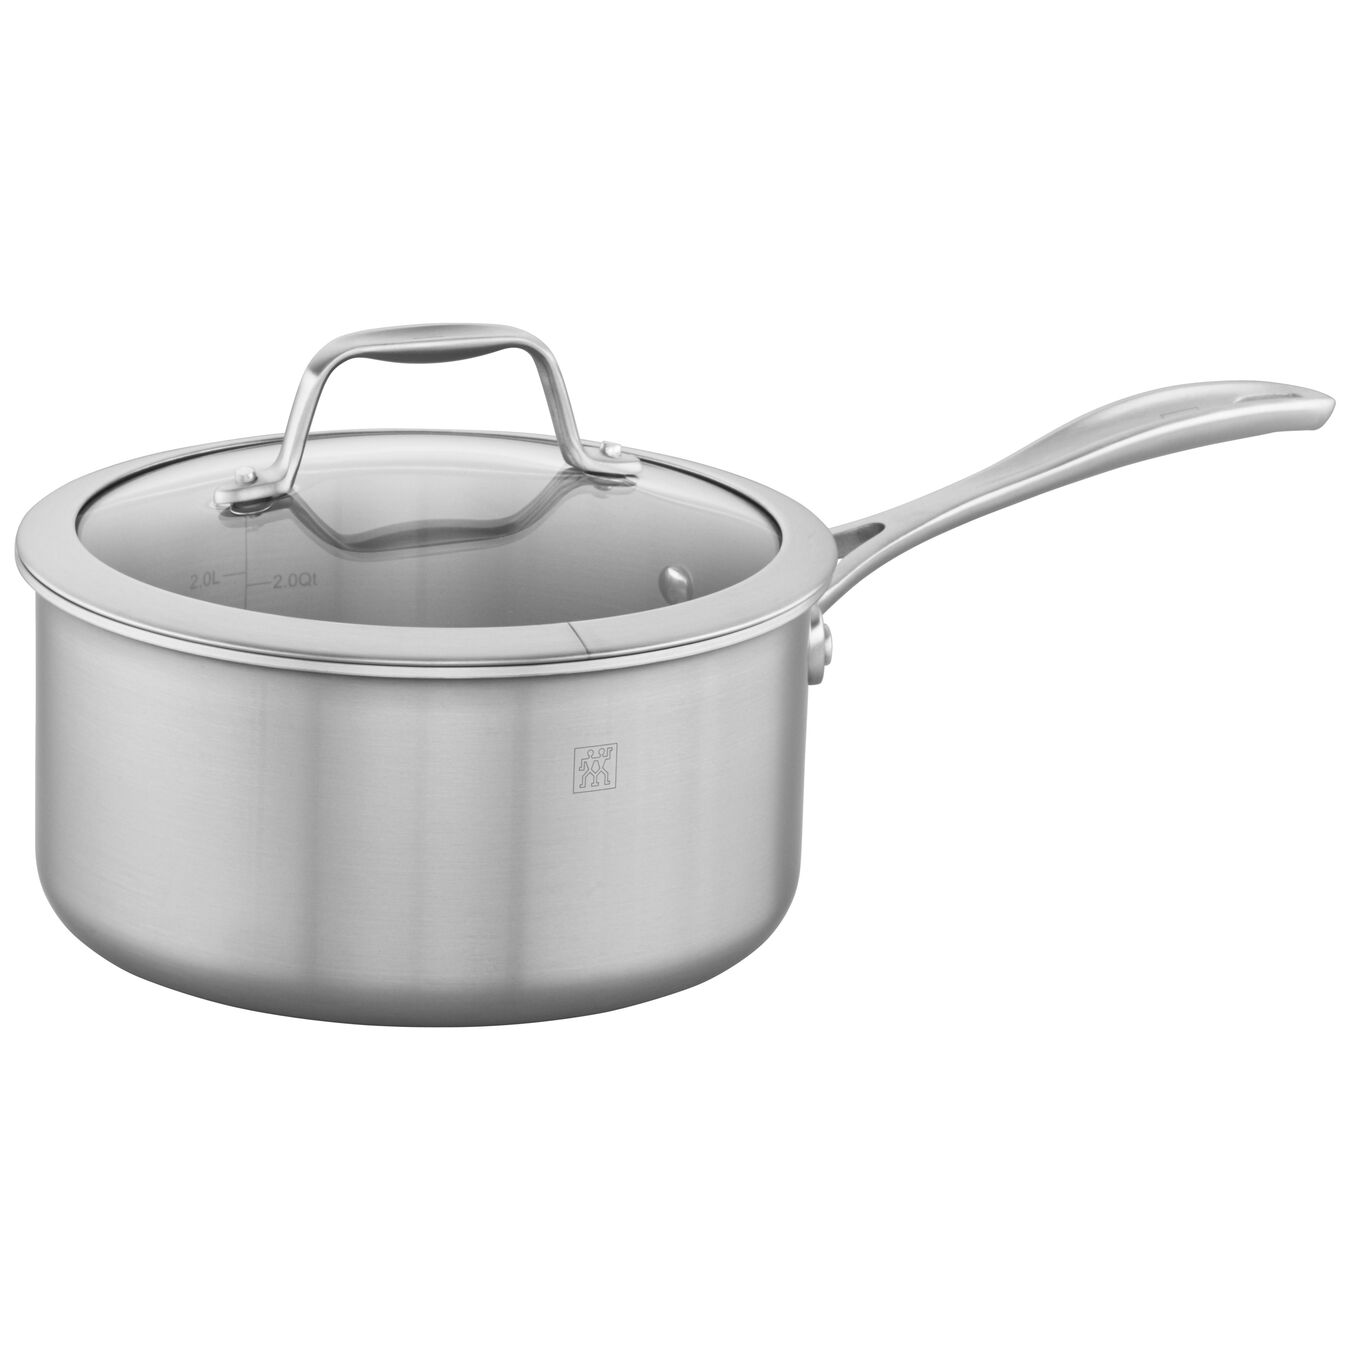 3-ply 3-qt Stainless Steel Saucepan,,large 1